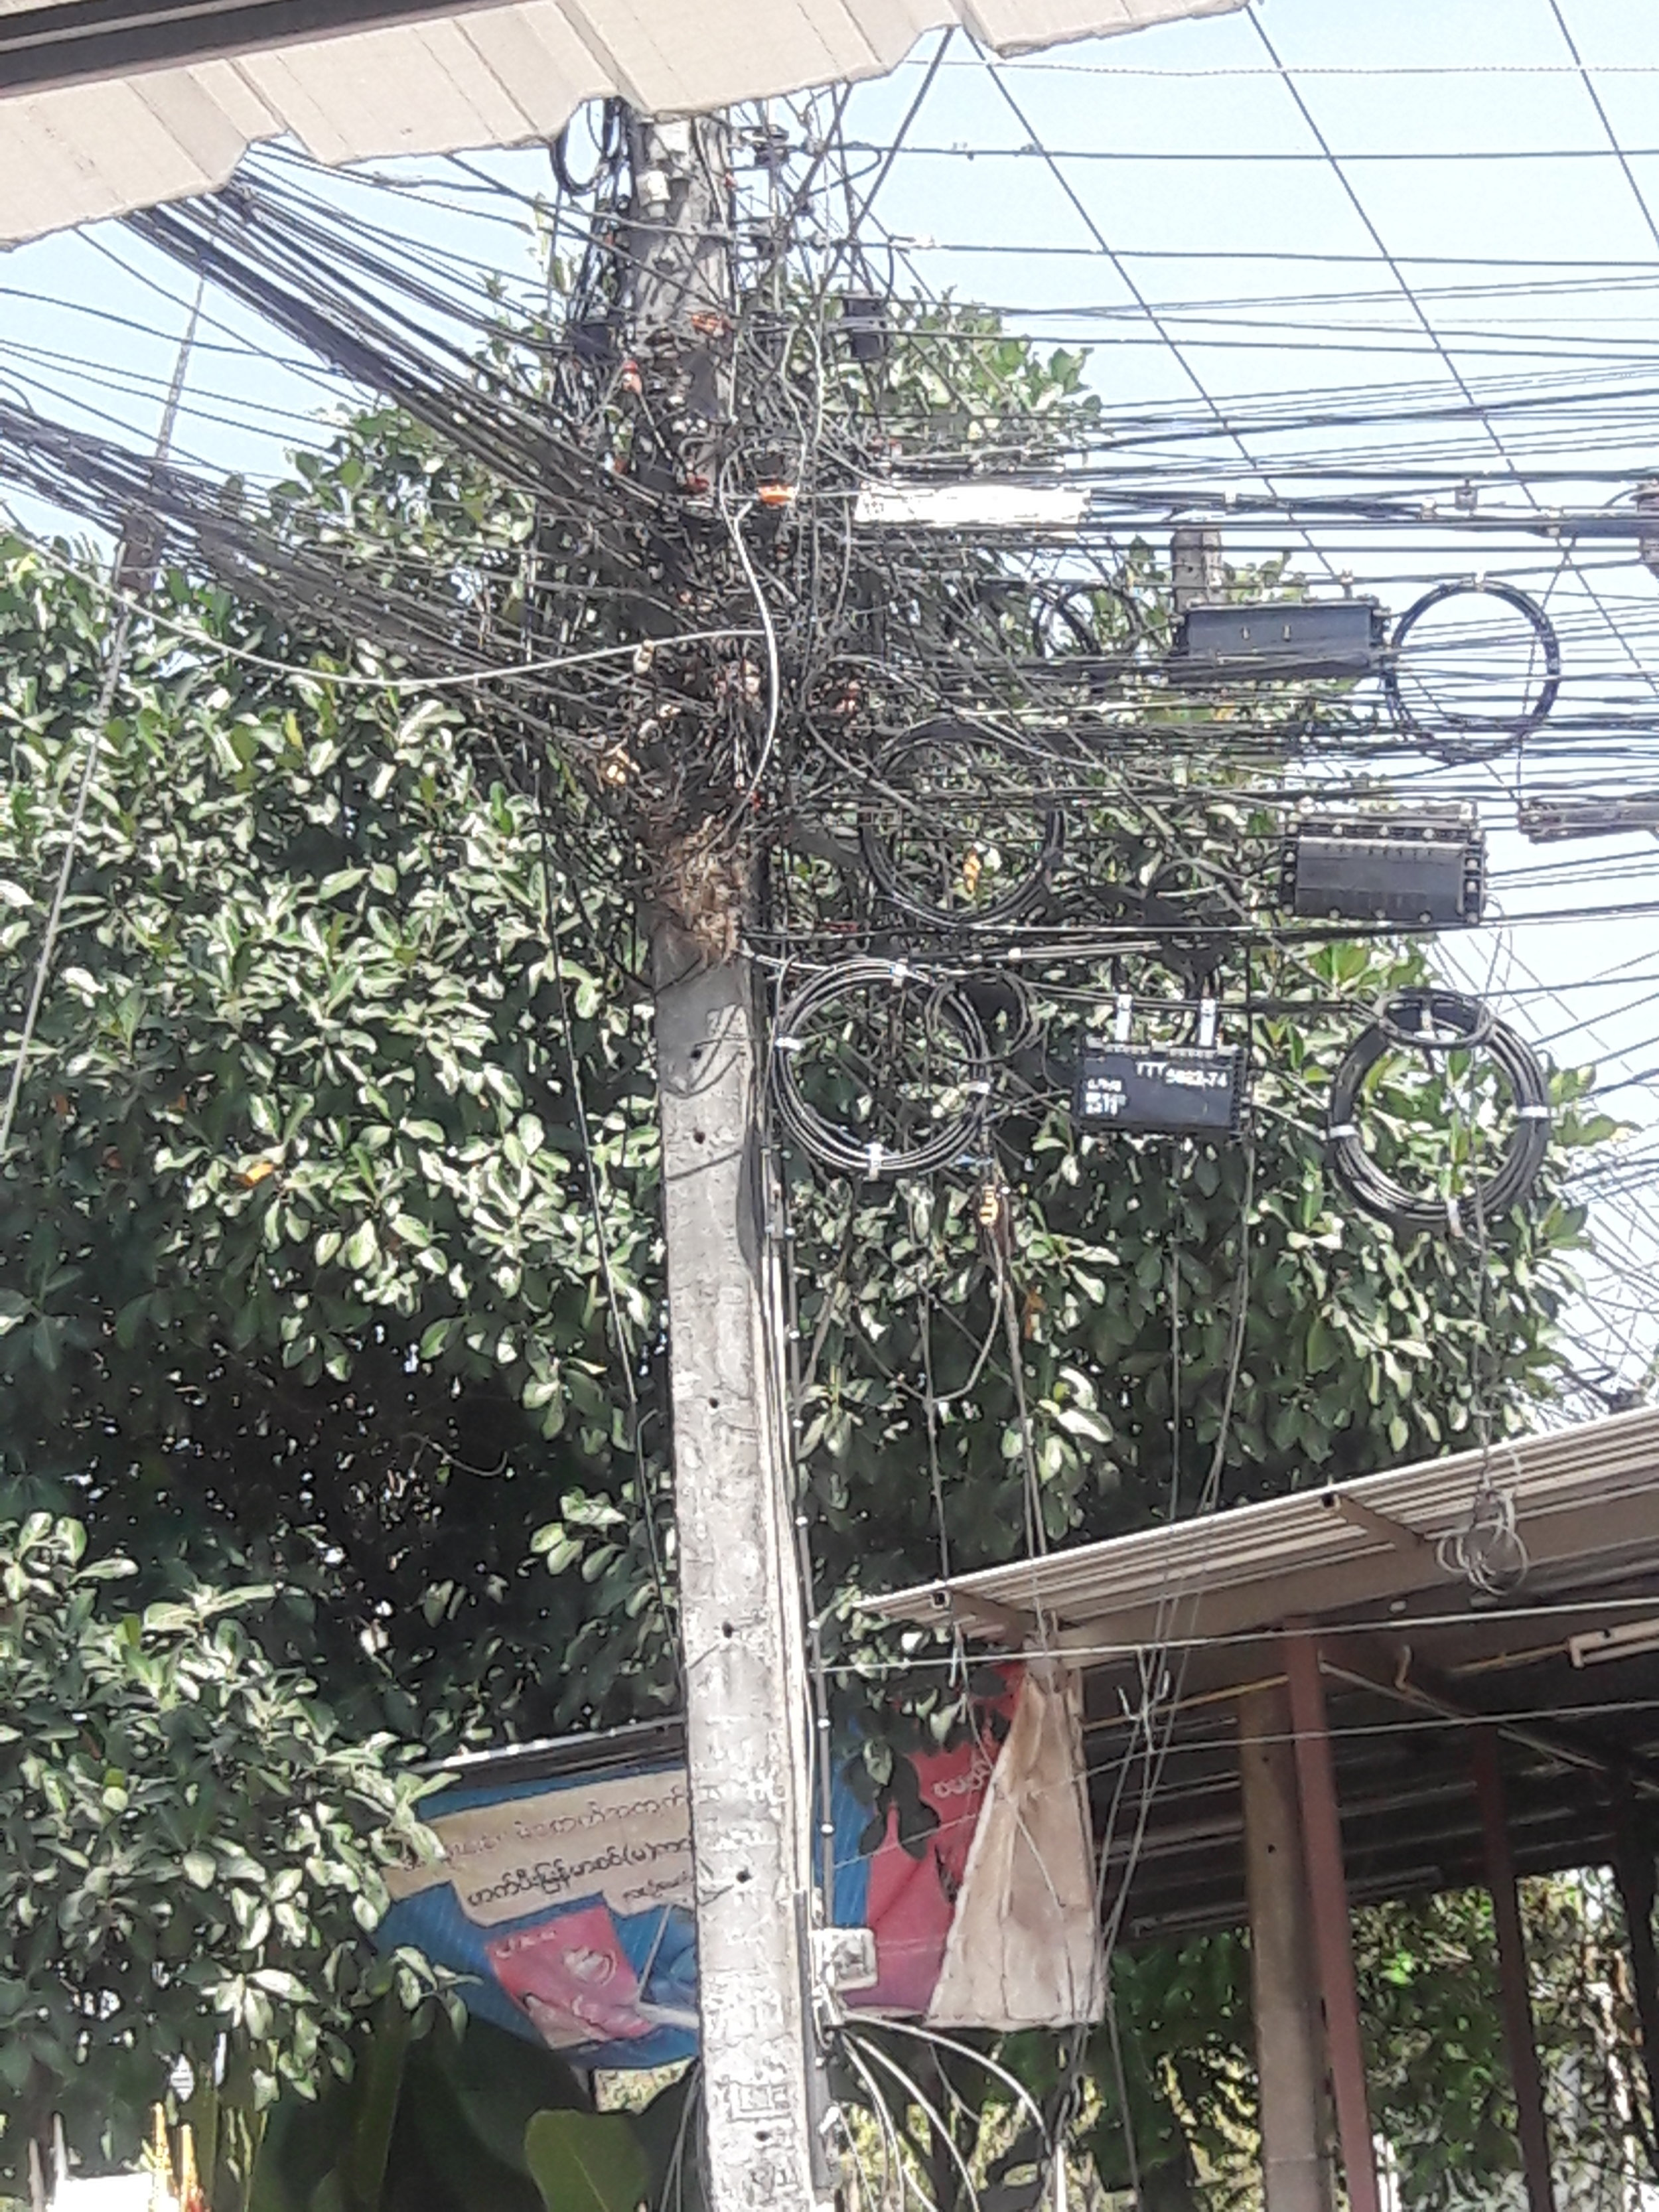 Clustered power lines seen in Thailand.